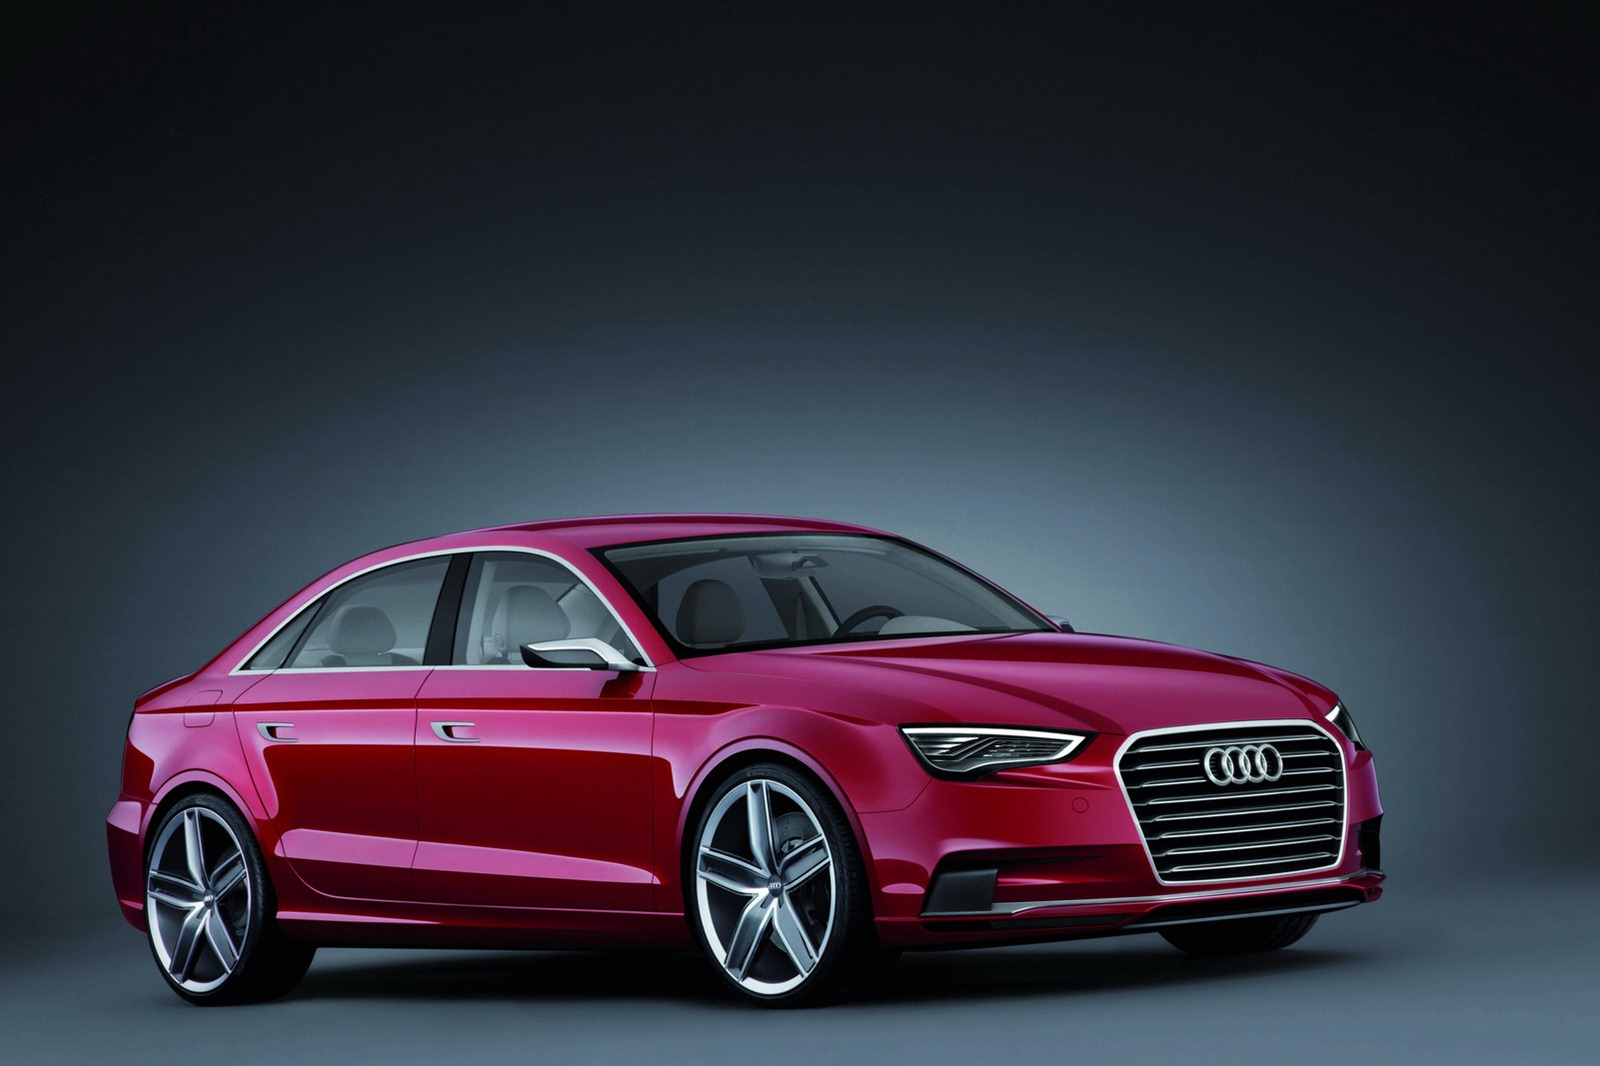 New Audi A3 And Electric R8 E Tron Coming In 2012